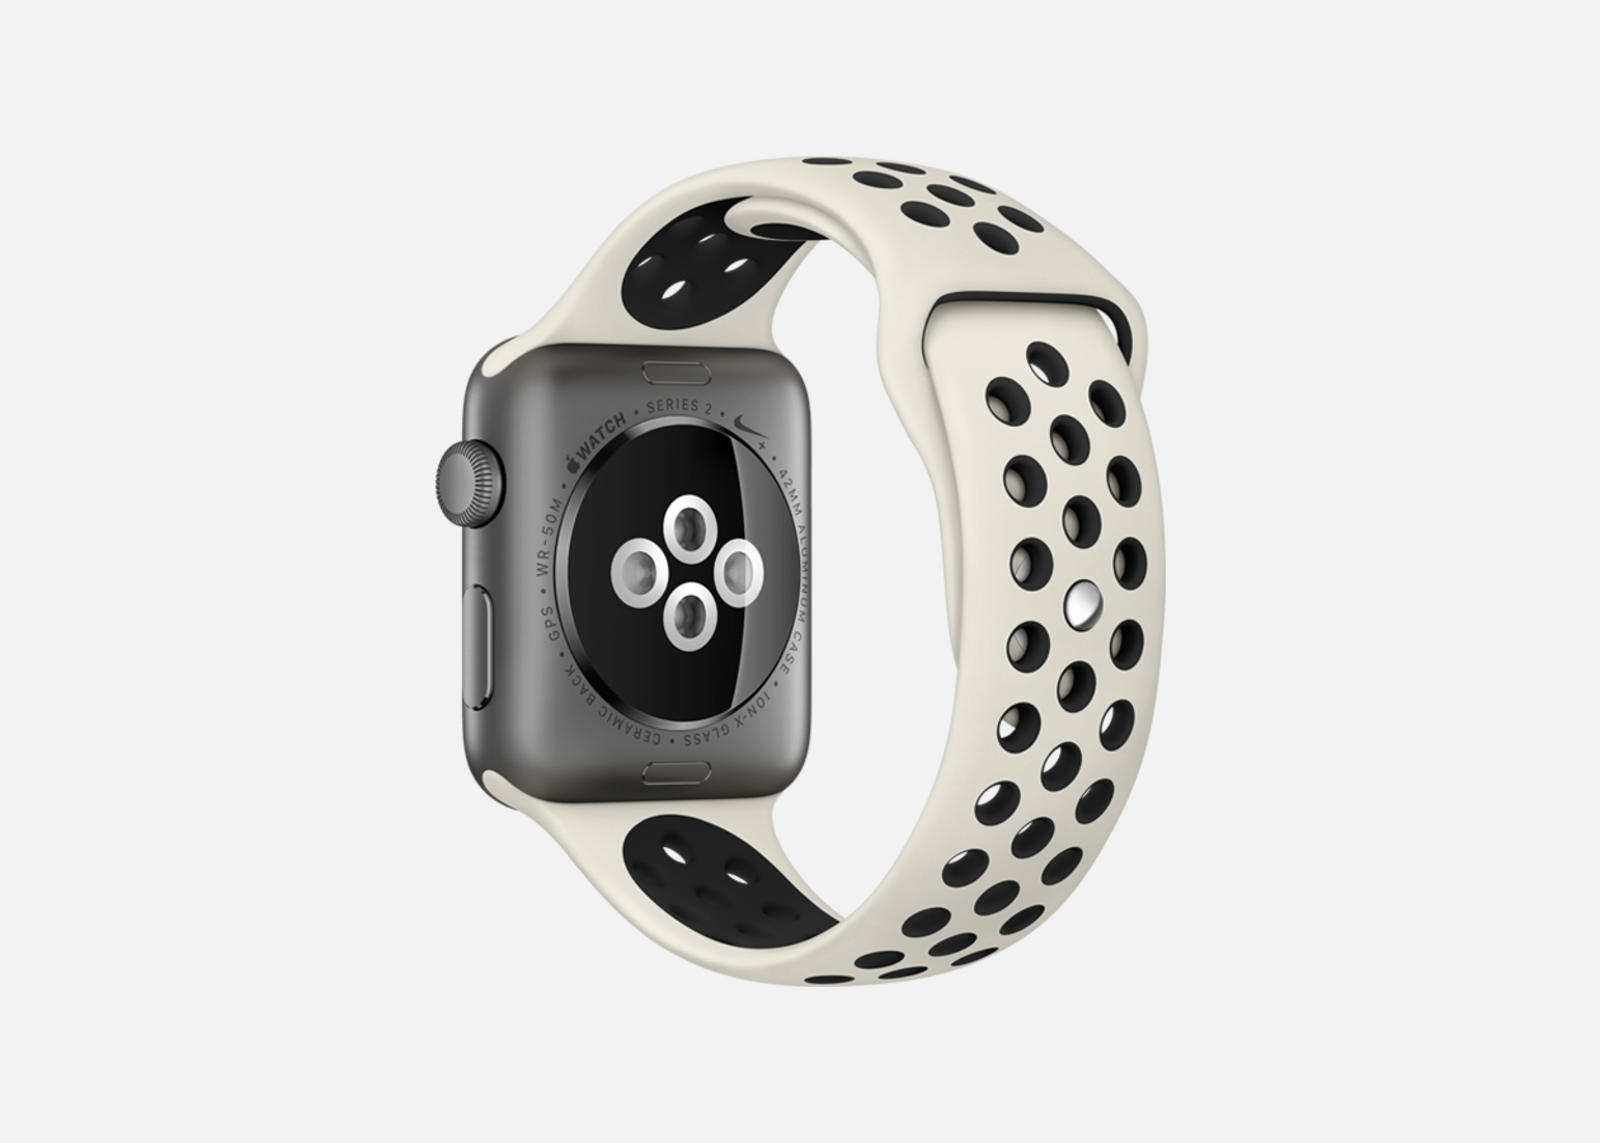 Apple Watch - Limited Edition: Nike kündigt Apple Watch NikeLab an